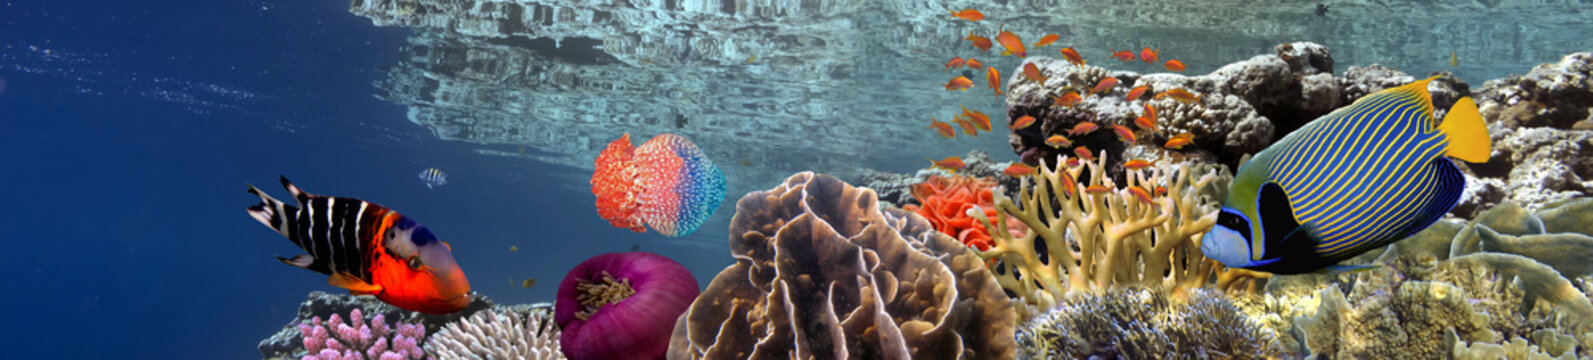 Coral reef underwater panorama with school of colorful tropical fish